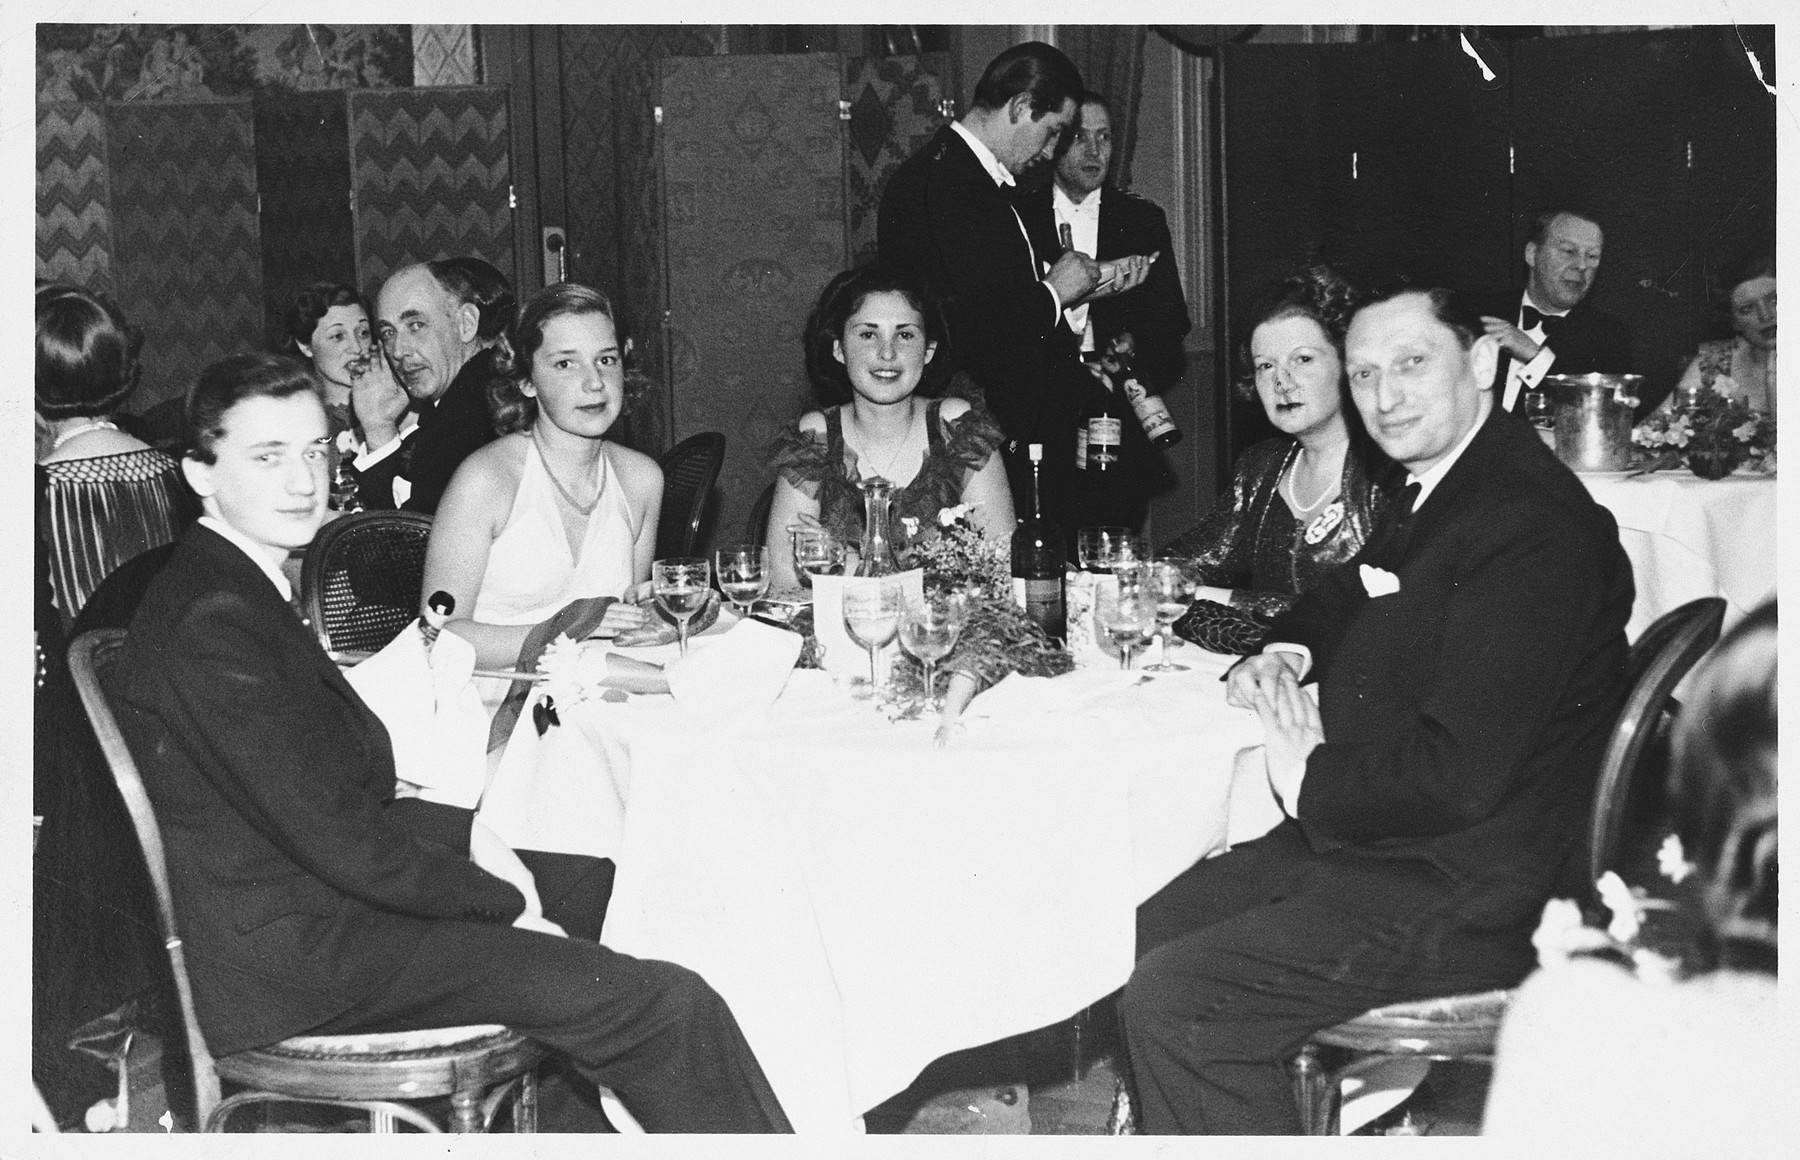 Ella Feuerwerk celebrates New Years with friends at the Carlton Hotel in Saint Moritz, where her father sent her to escape the political situation in Austria.  She is pictured in the center.  Also pictured are Mr. and Mrs. Levy and their niece and nephew, Nina and Karli.